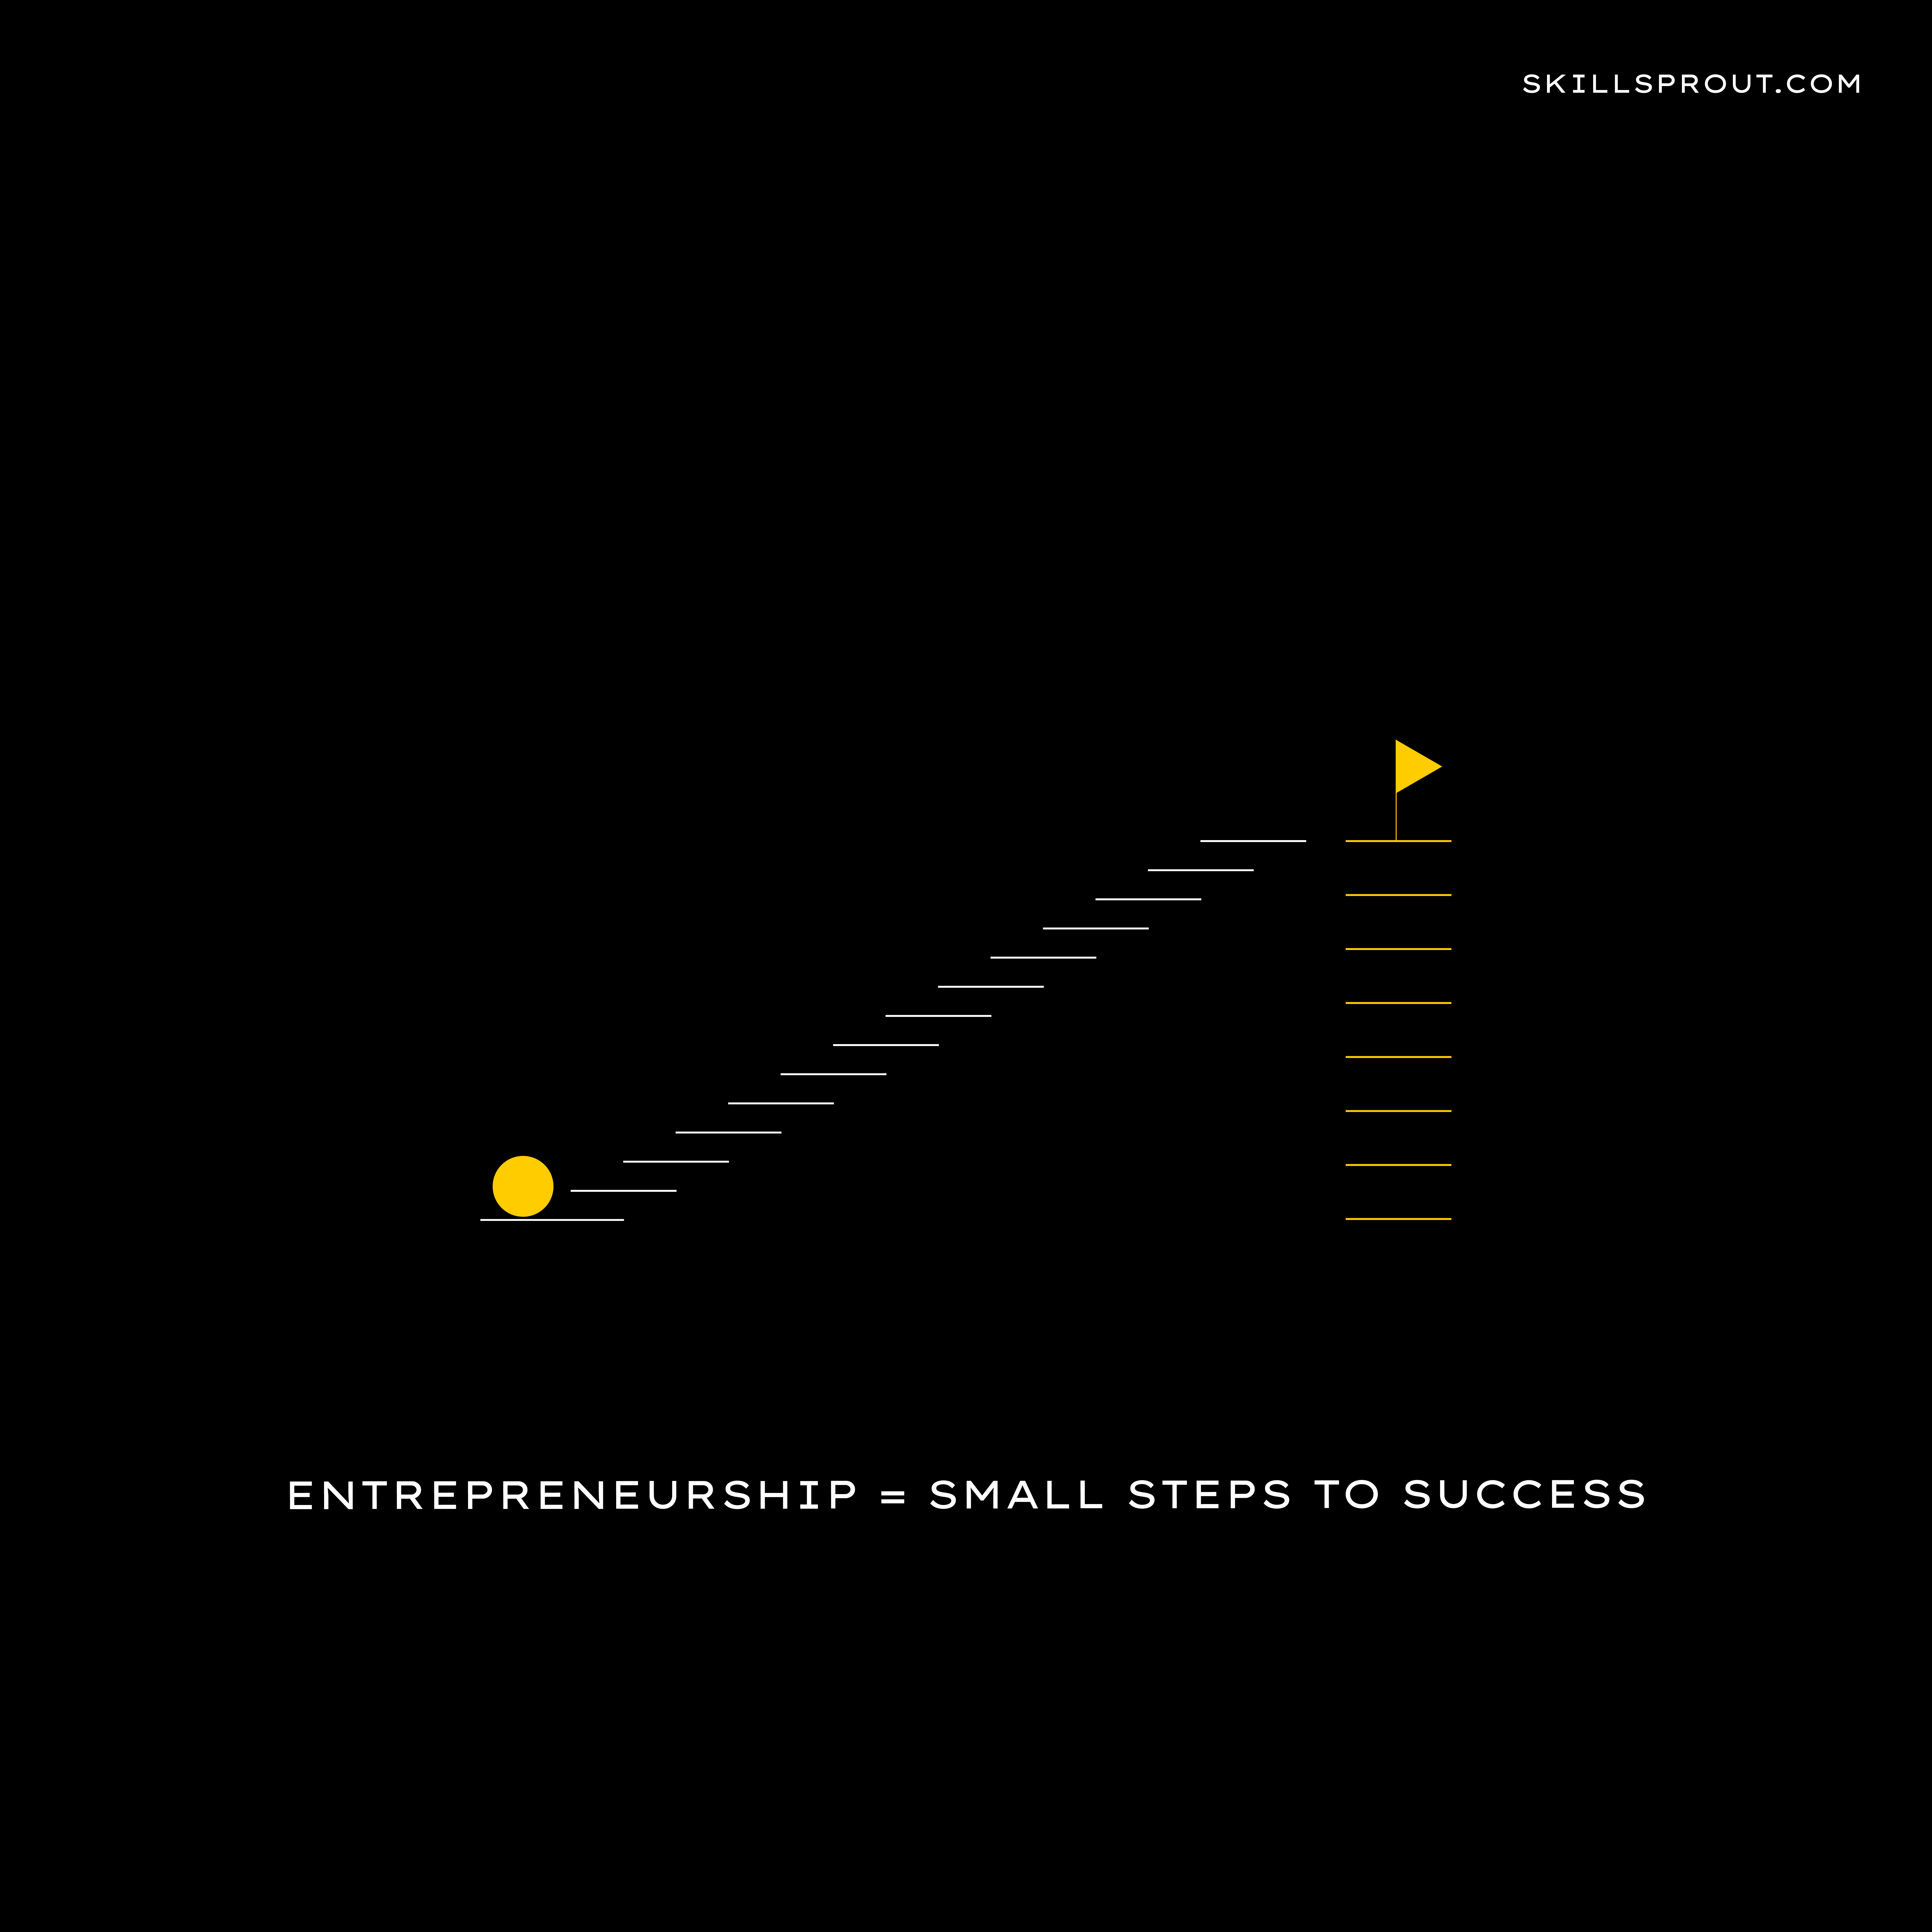 Entrepreneurship is taking small steps to success